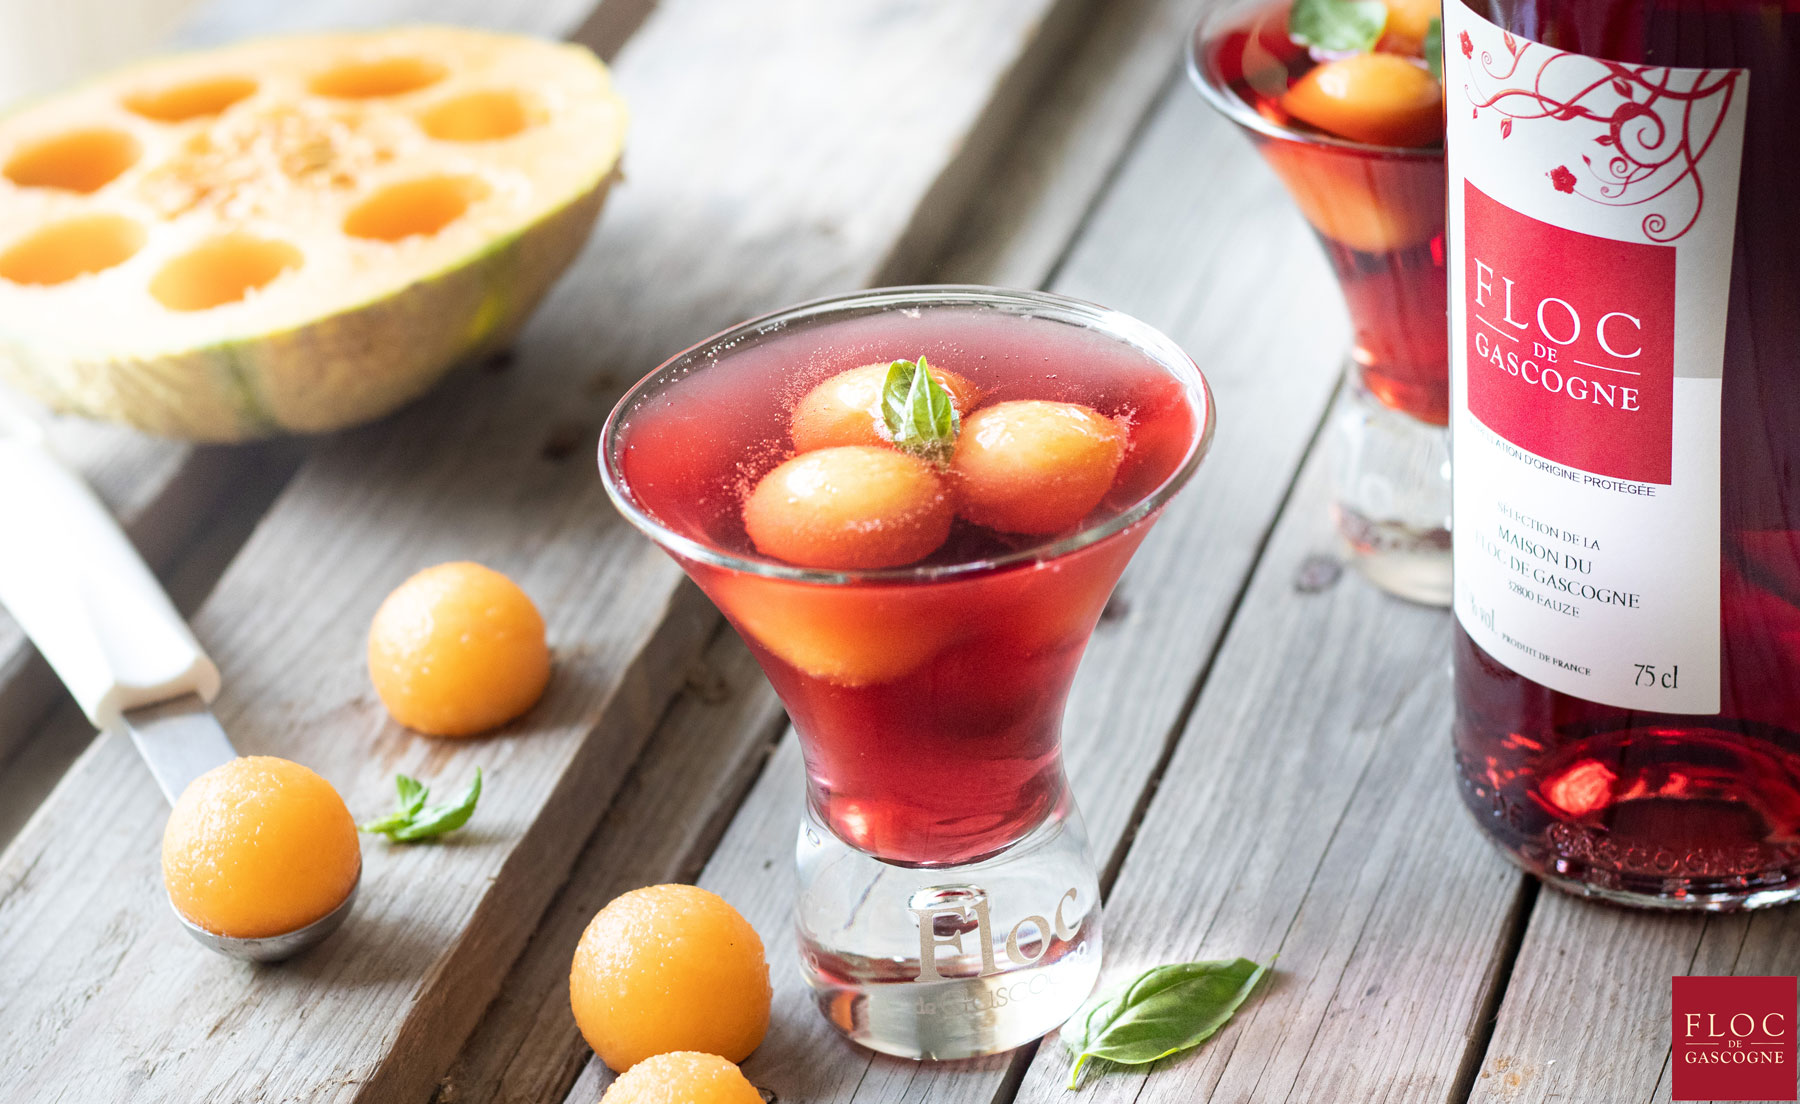 Cocktail Floc-de-Gascogne et melon